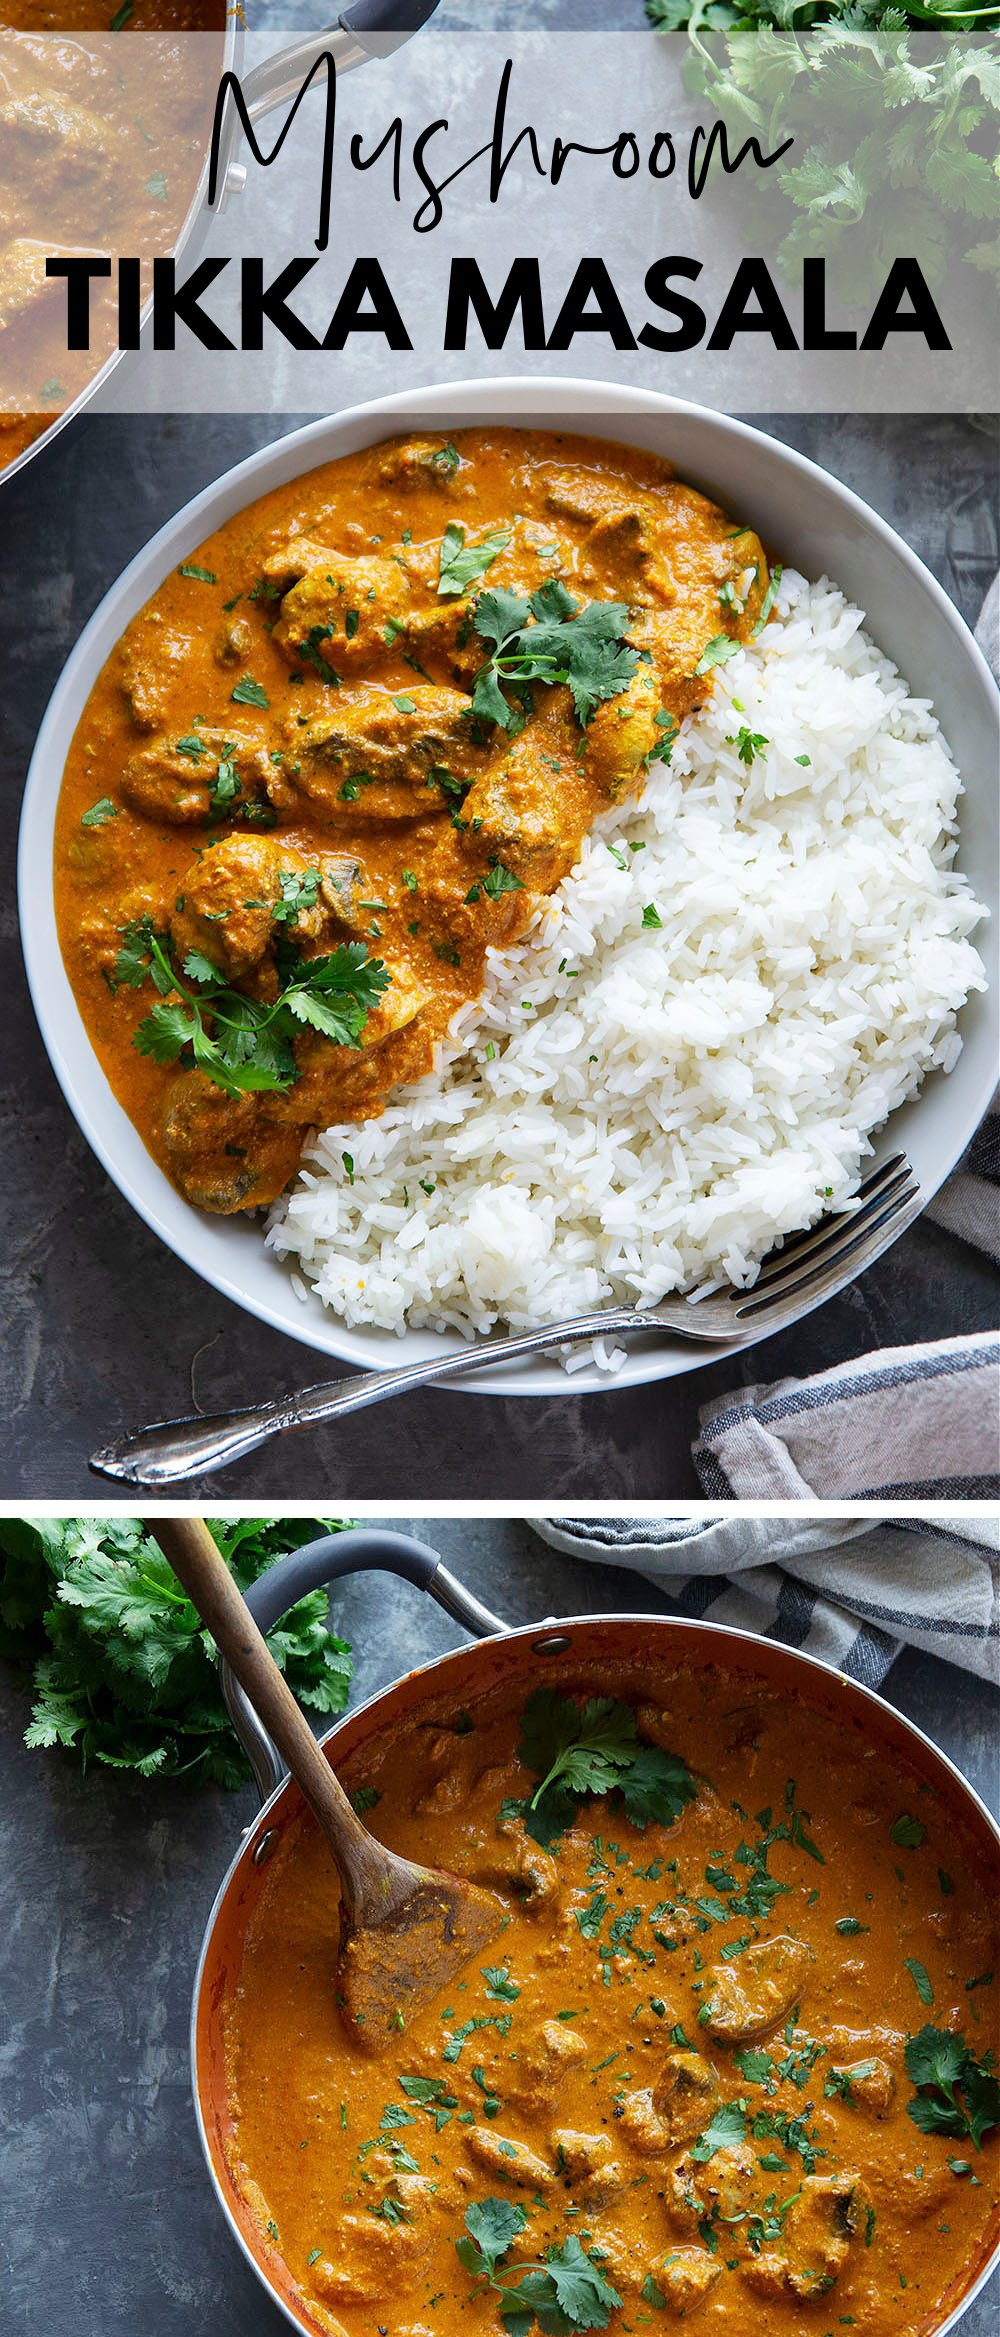 Mushroom tikka masala features tender yogurt-marinated mushrooms in a rich, spicy tikka masala sauce and served over fluffy rice with lots of cilantro on top.